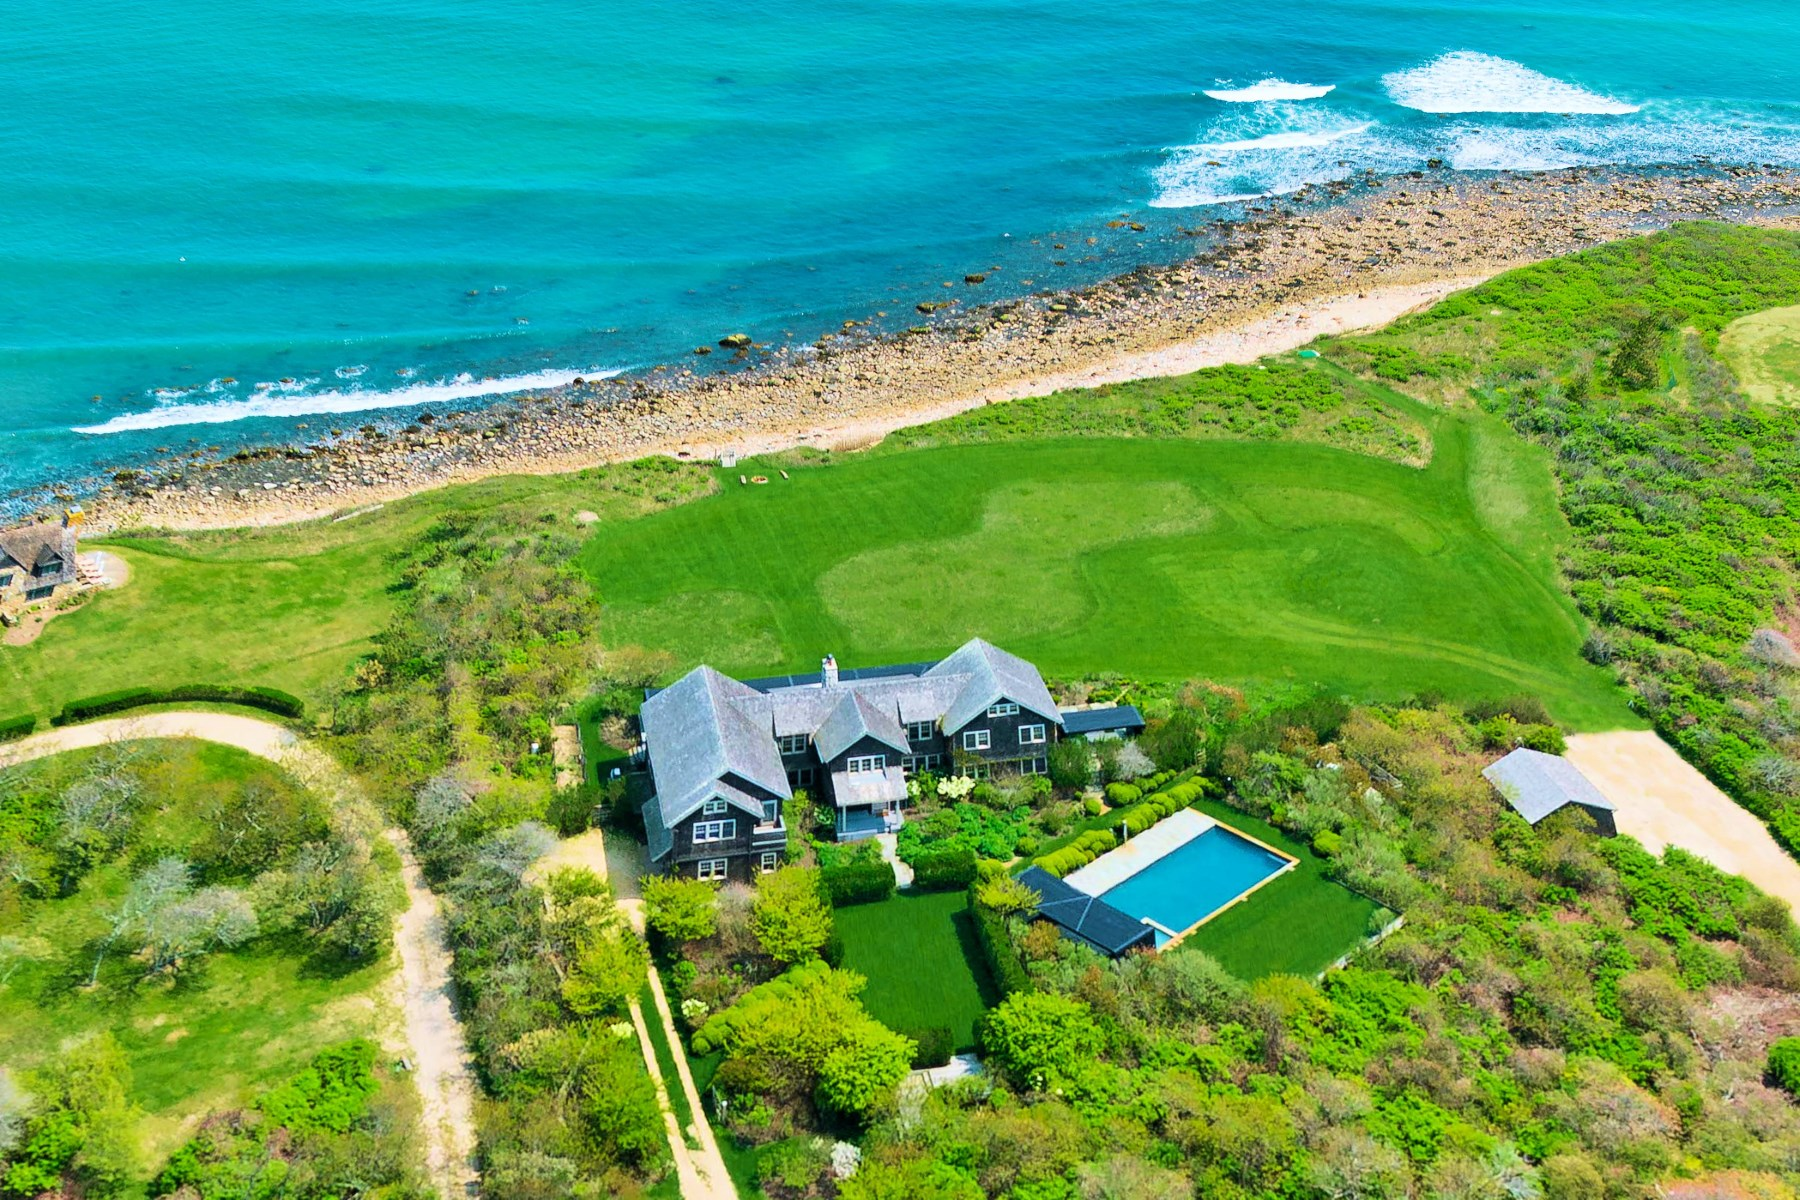 Villa per Vendita alle ore Caswell Point and Driftwood Cove 406 Old Montauk Highway Montauk, New York, 11954 Stati Uniti